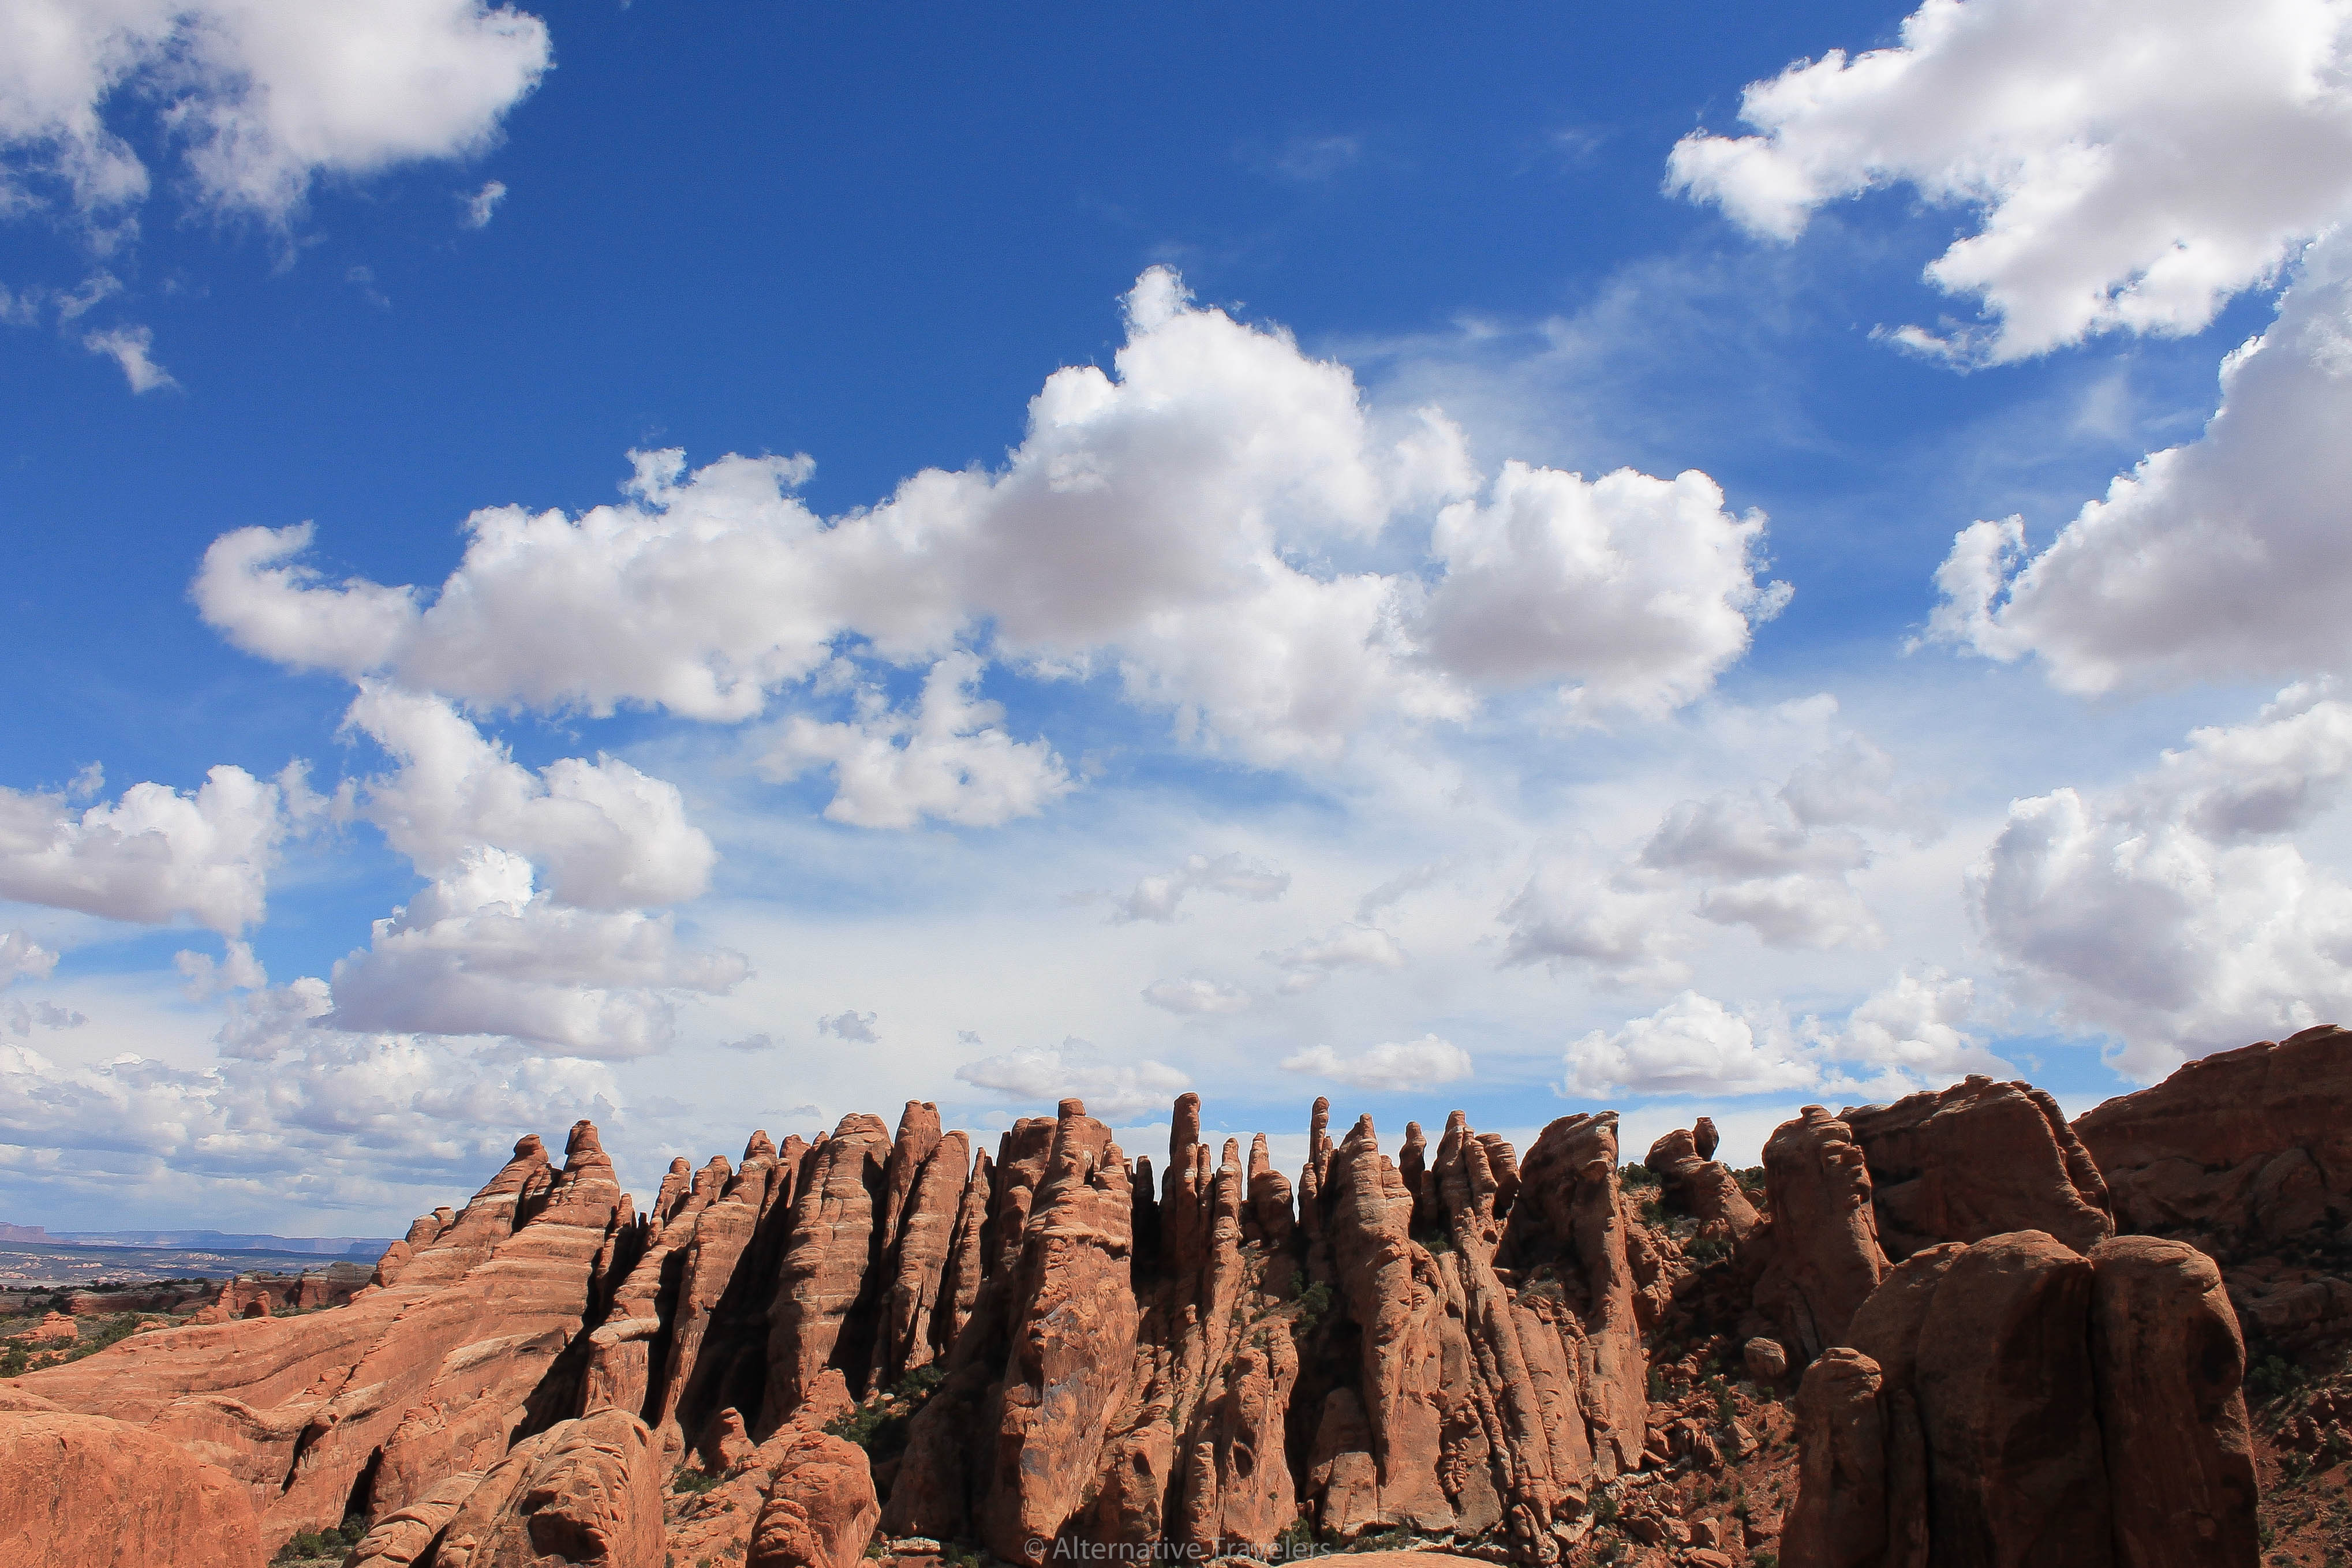 The Fiery Furnace at Arches National Park